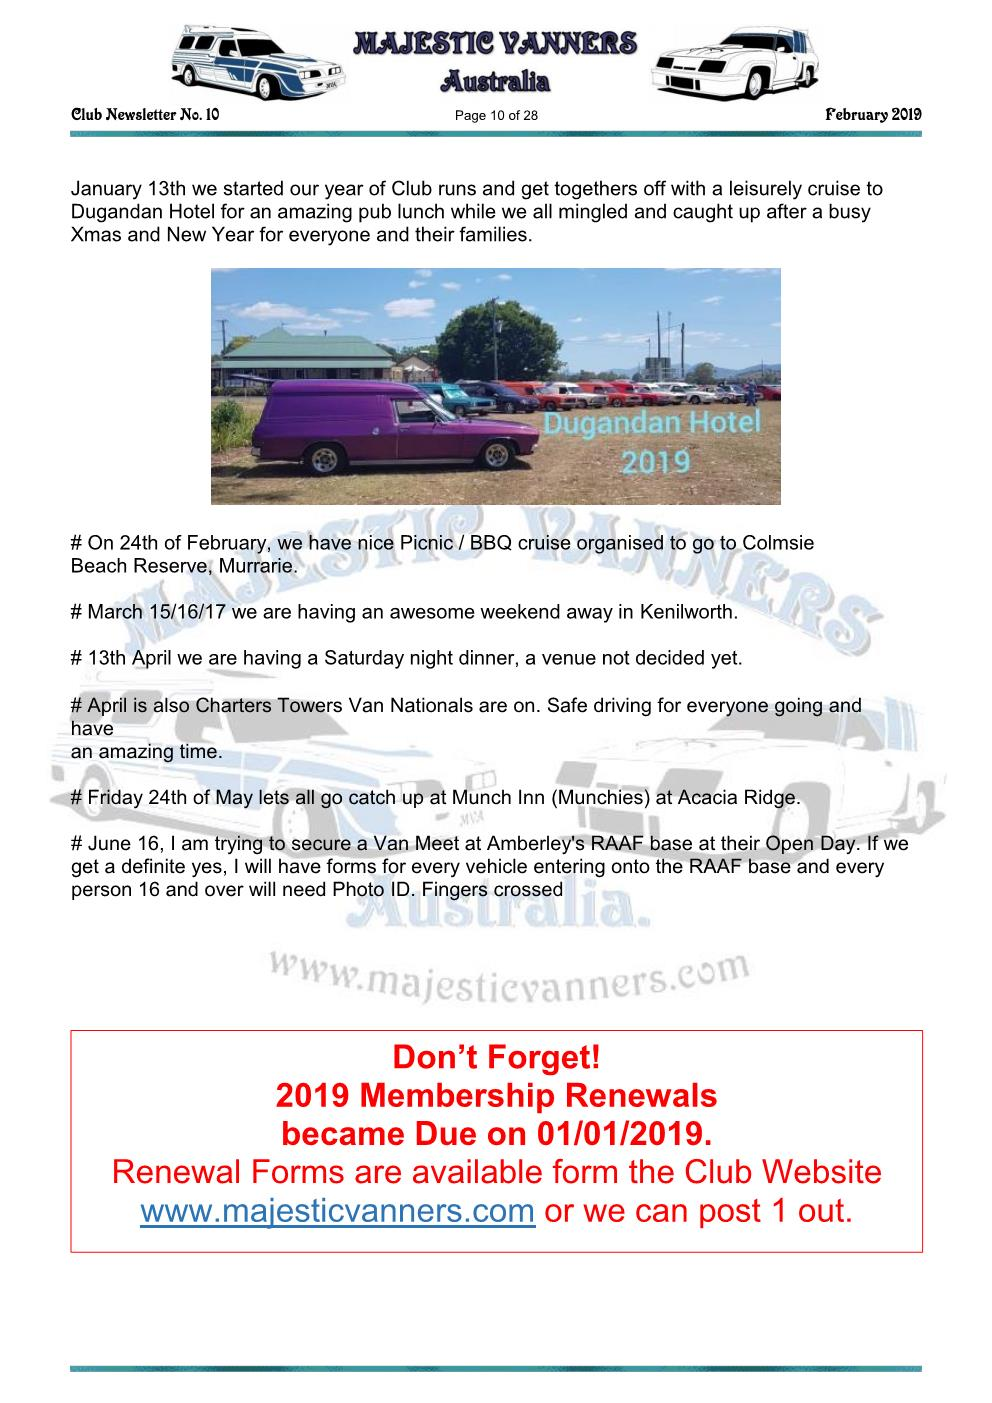 MAJESTIC VANNERS Newsletter Issue No: 10 February 2019 Mv_new19